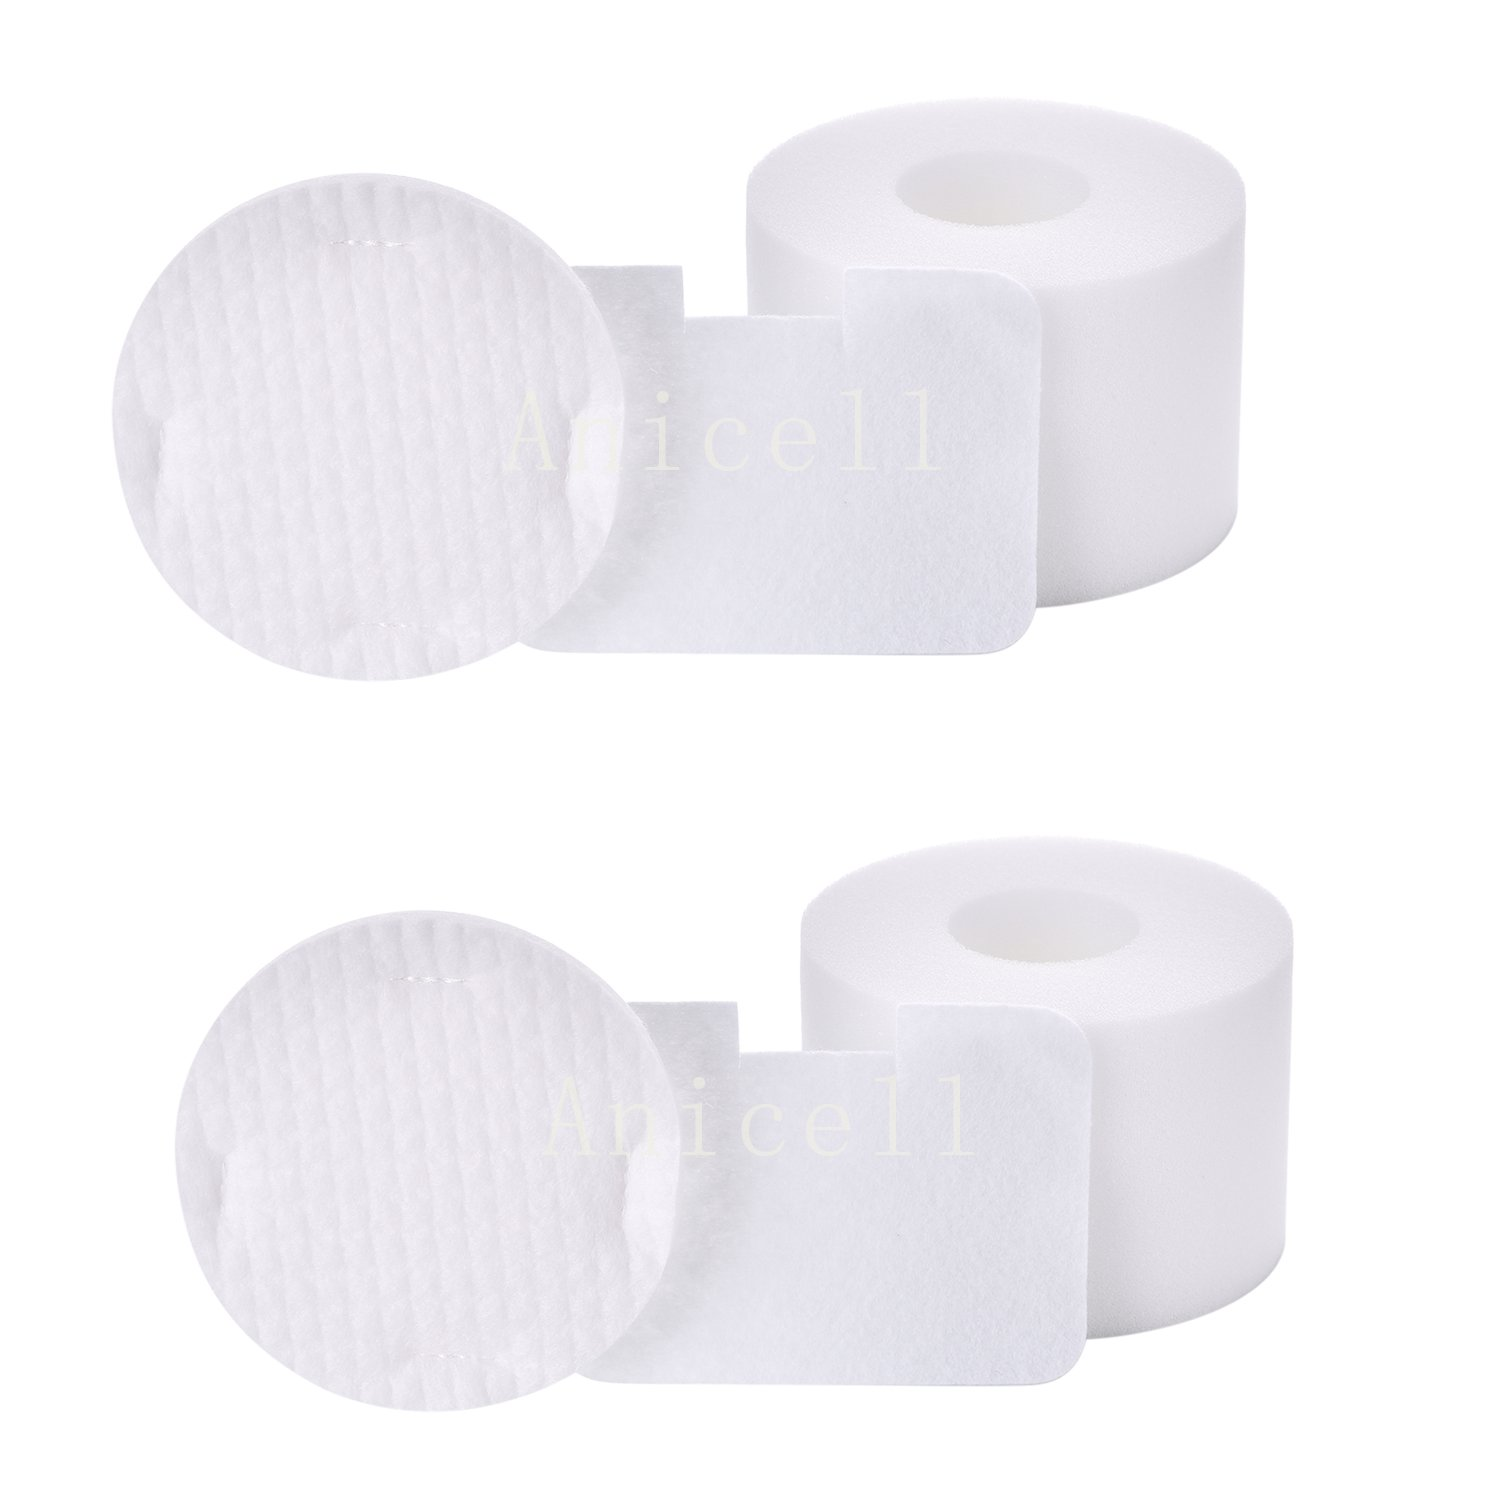 Anicell 2 Pack Foam & Felt Filter Kit for Shark NV42 Deluxe Upright Vac Vacuum Cleaner, Part #XFF36 Designed & Engineered